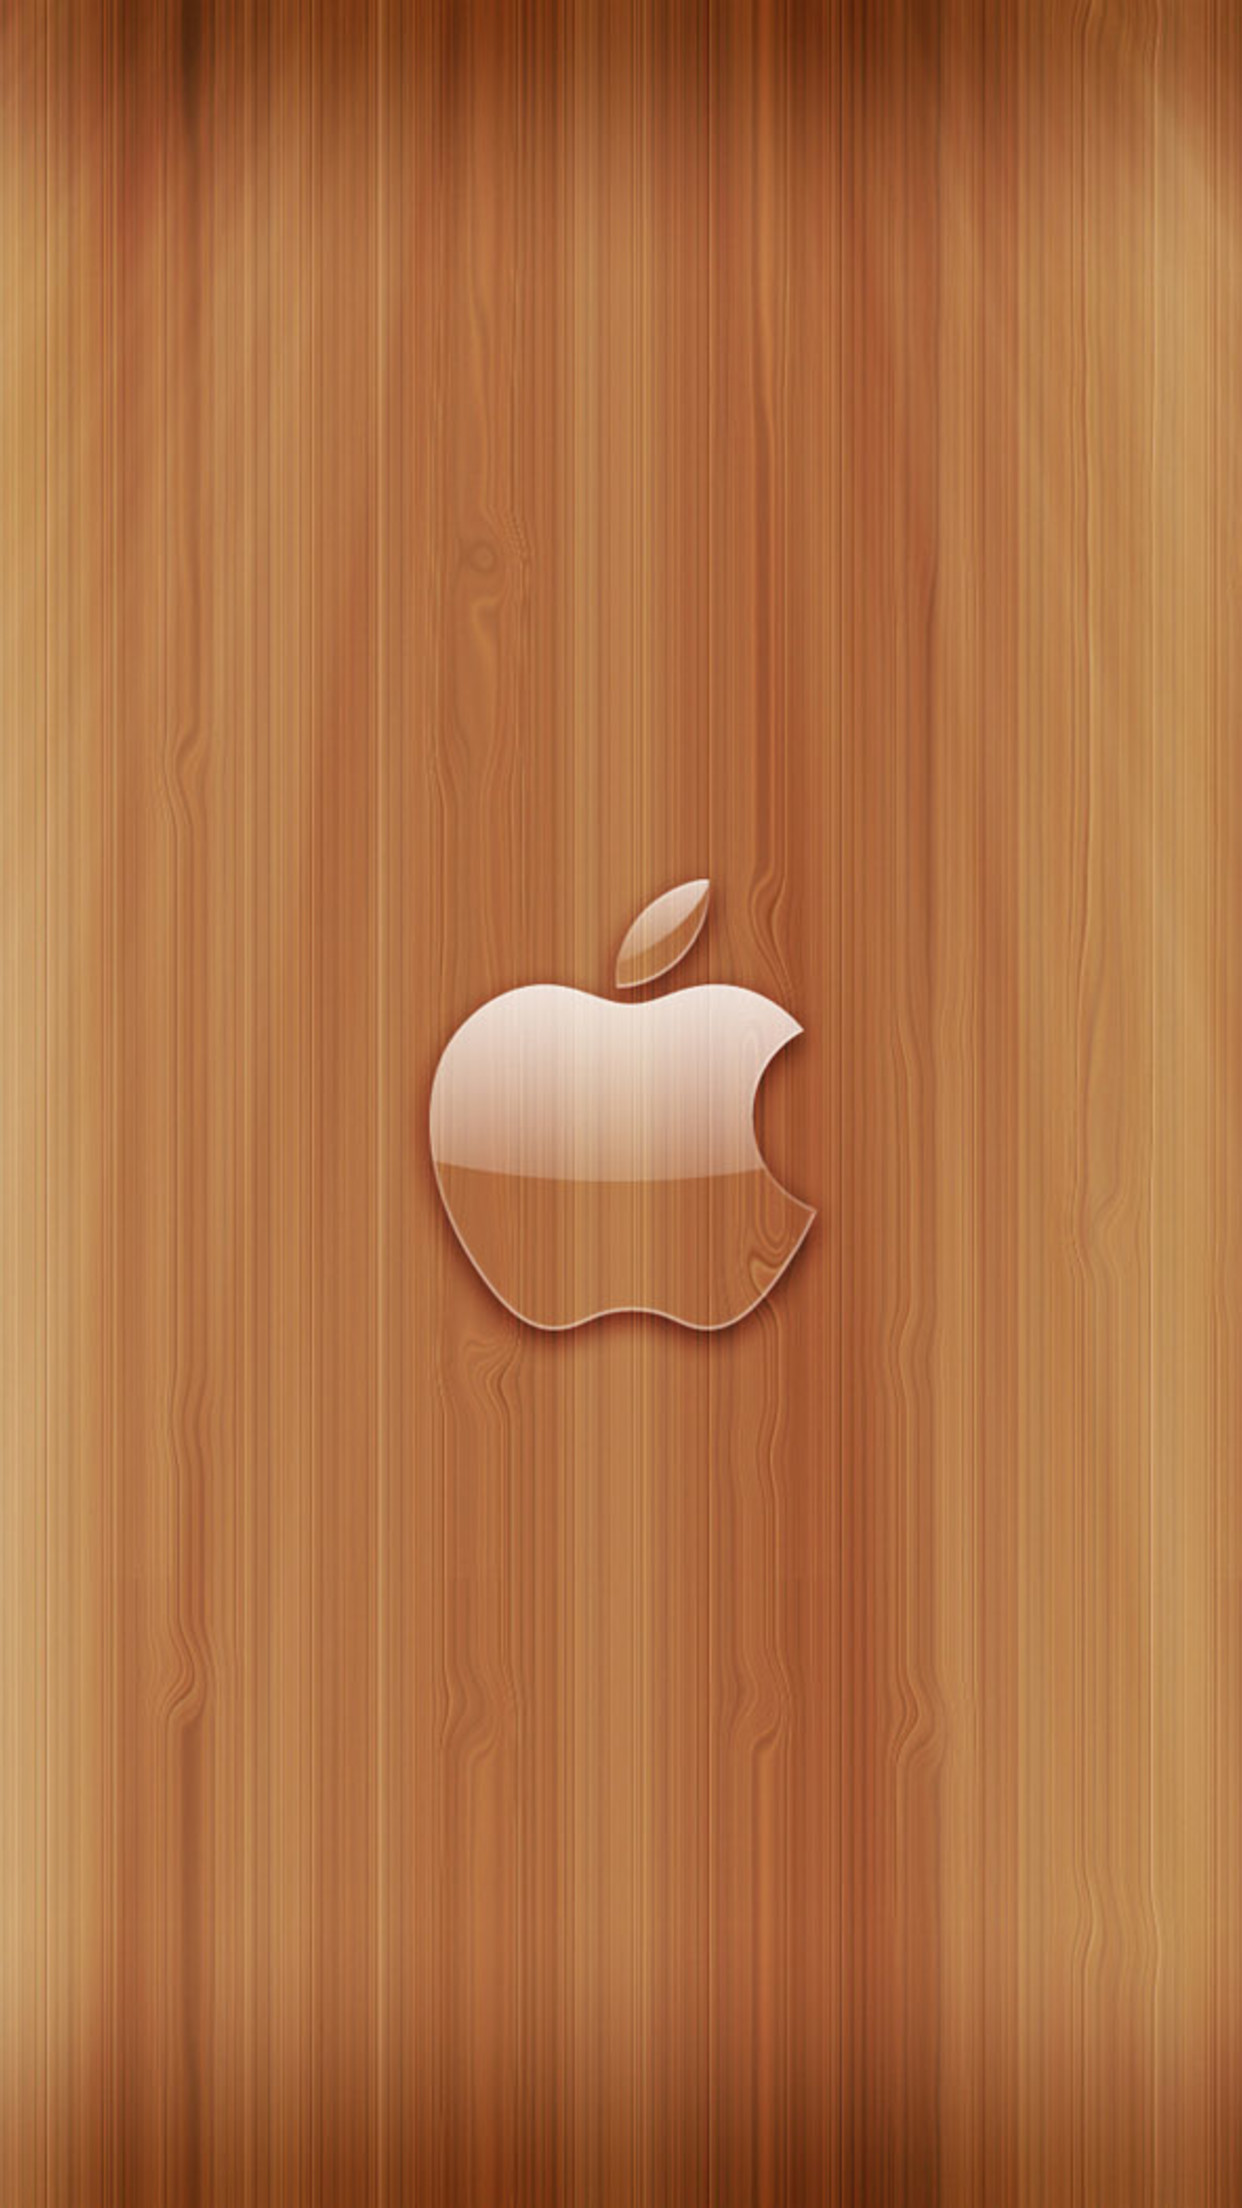 Girl With Balloons Wallpaper Apple Logo Wood Wallpaper For Iphone X 8 7 6 Free